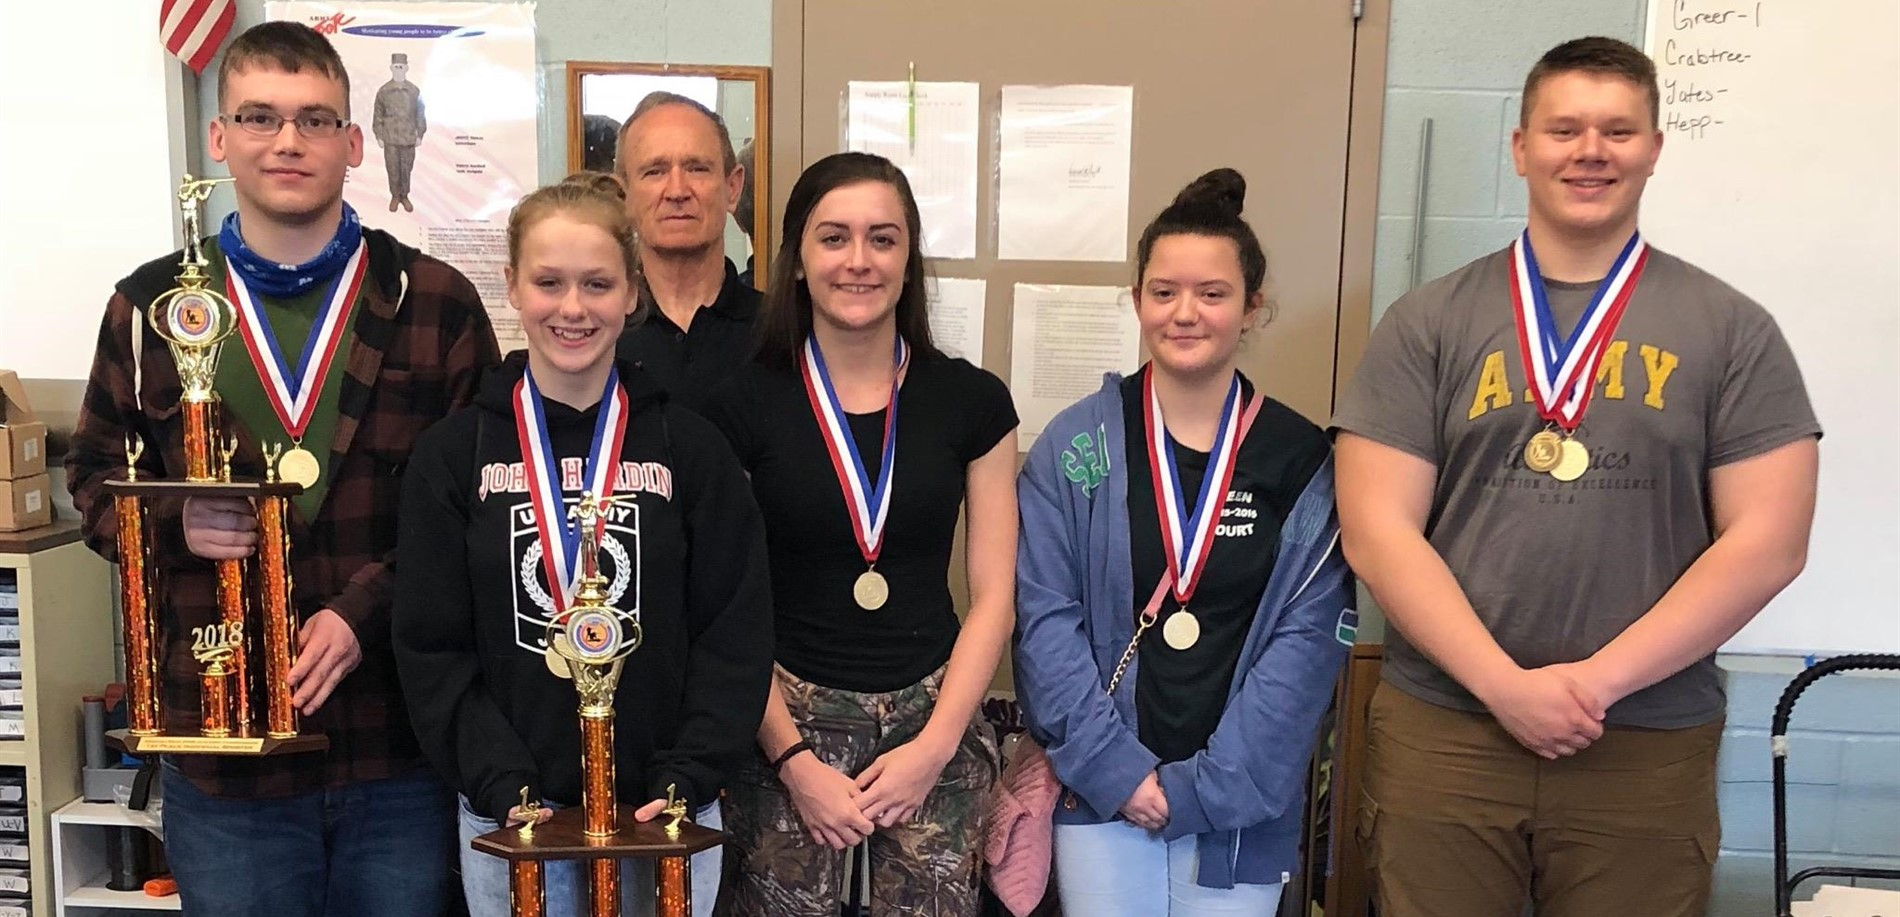 The John Hardin High School JROTC Air Rifle Team earned 1st Place at the USA Junior Olympics Three Position Air Rifle Match for Kentucky.